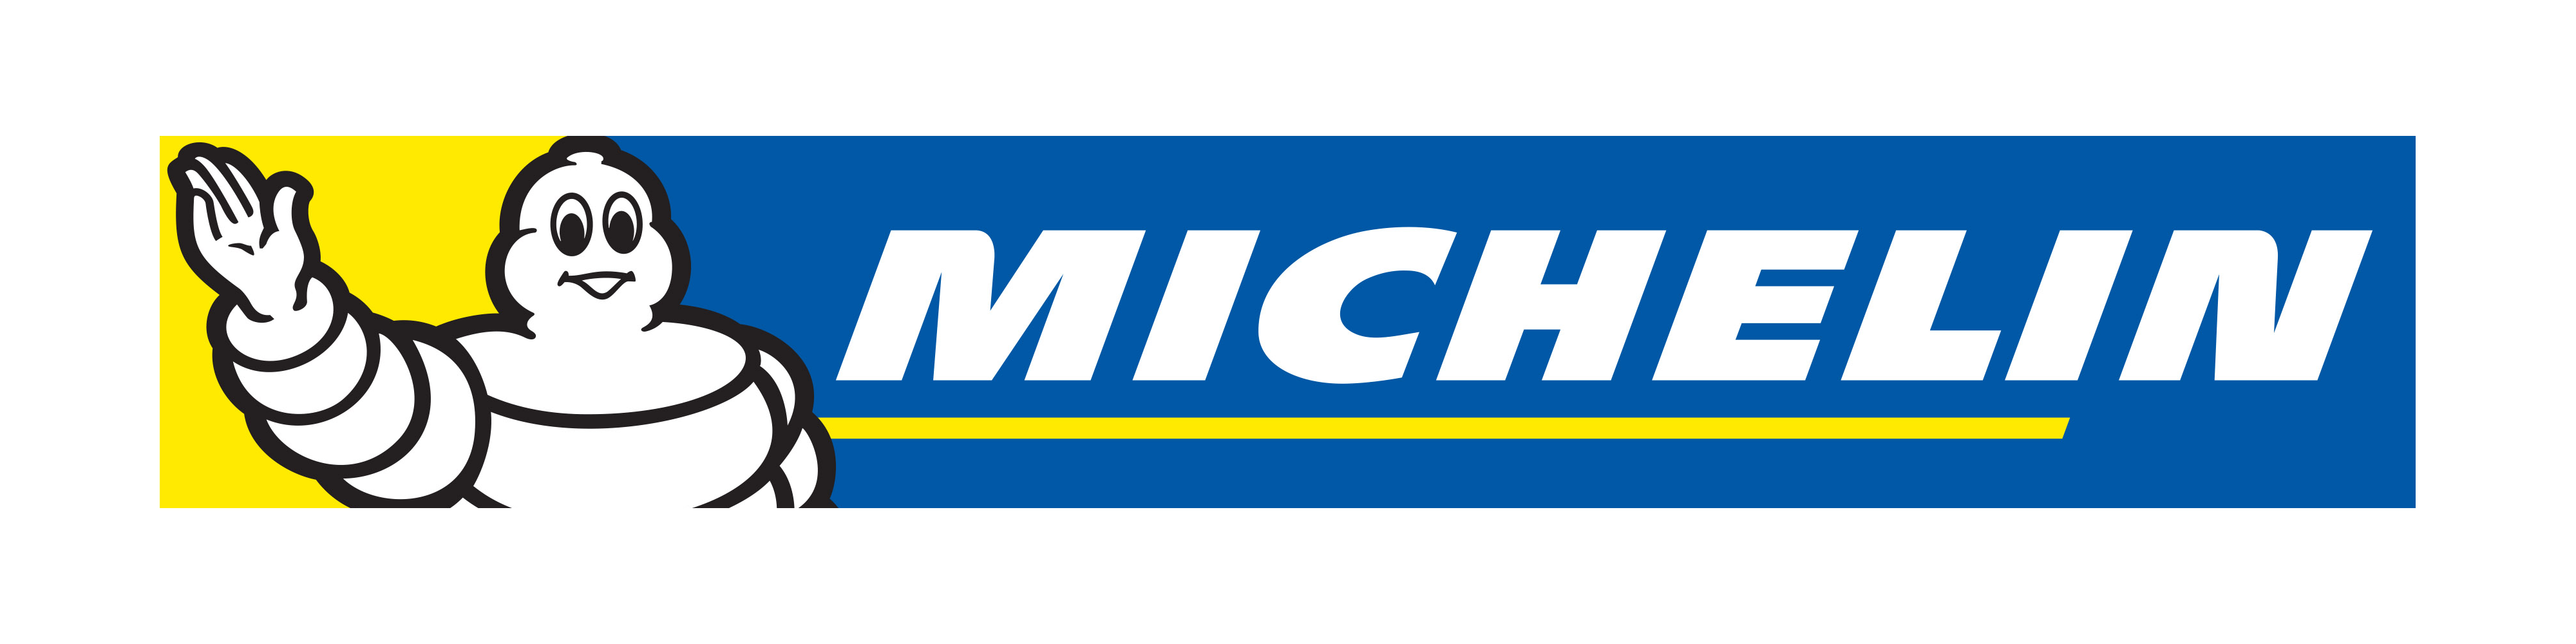 Michelin Logo Hd Png Information Carlogos Org